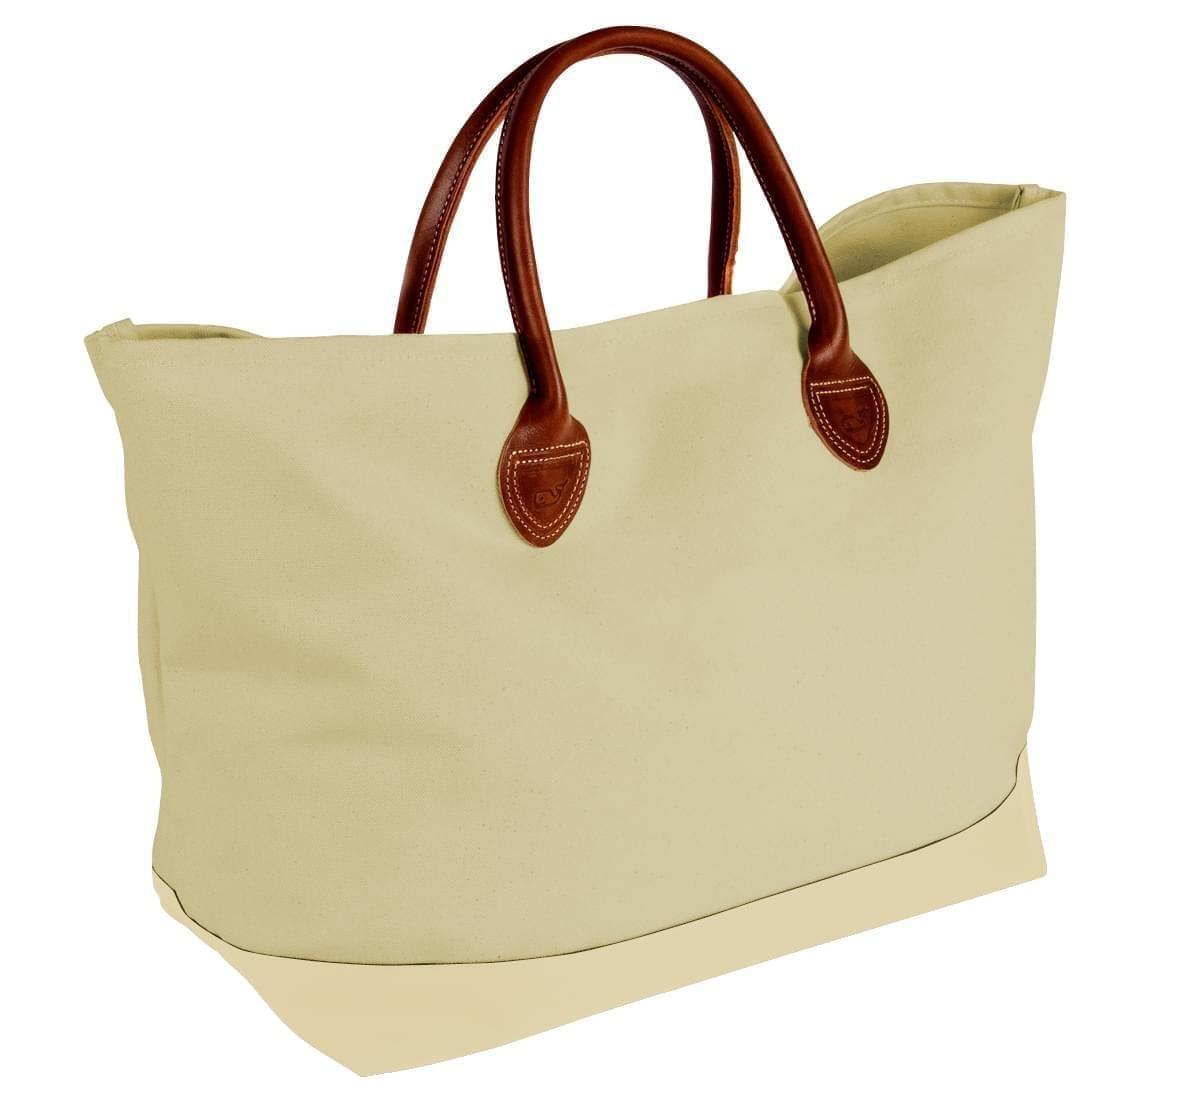 USA Made Canvas Leather Handle Totes, 10899-15C